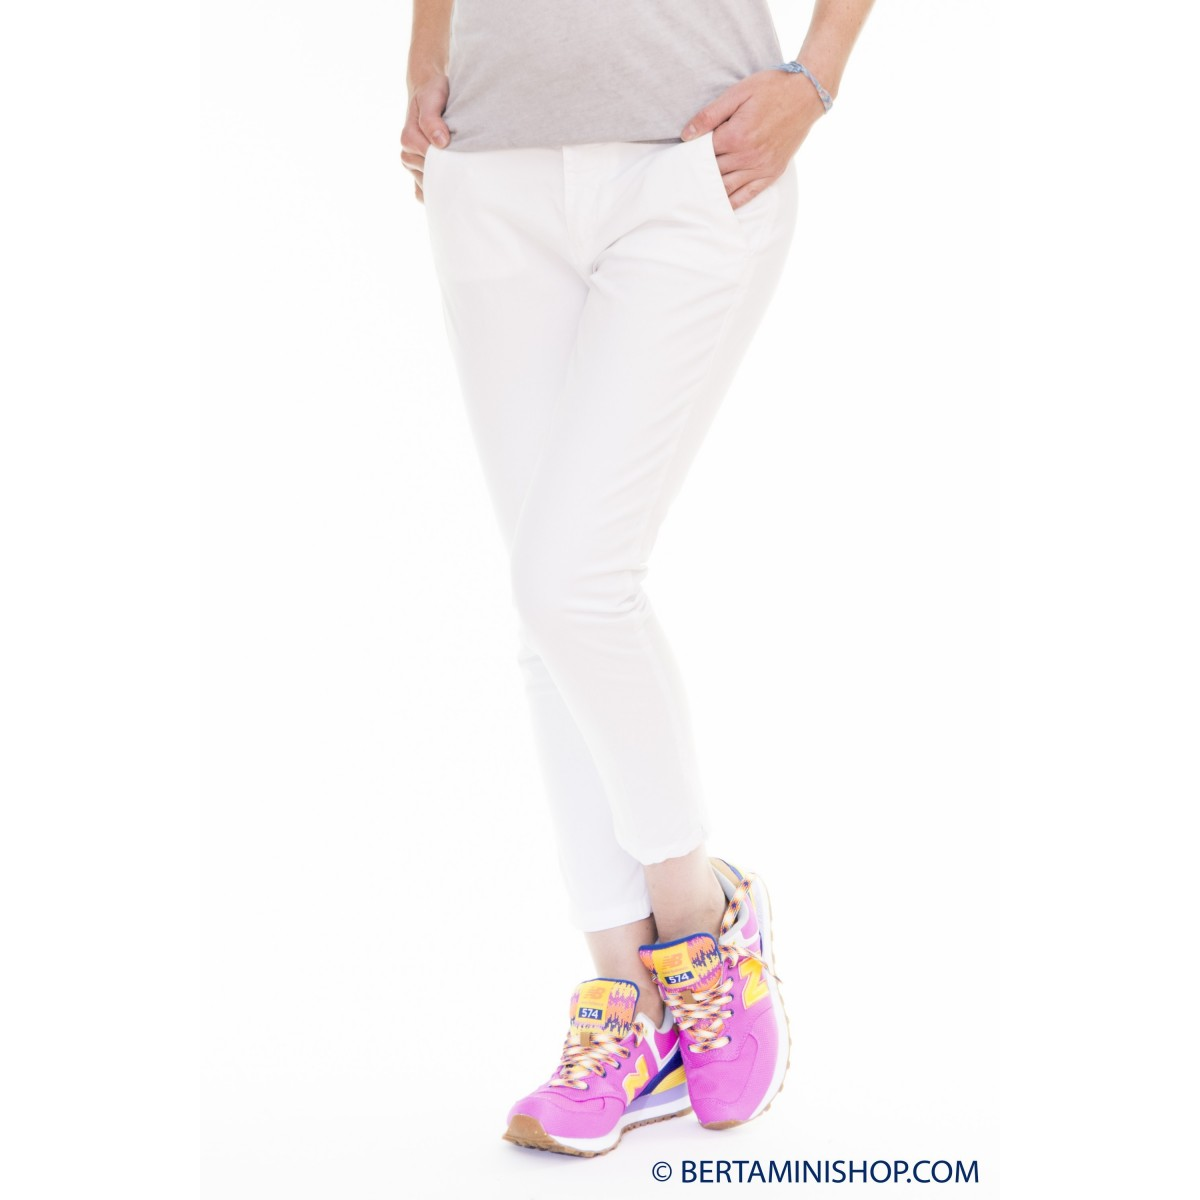 Trousers 40 Weft Woman - Melitas 6062 Strech 441 - bianco